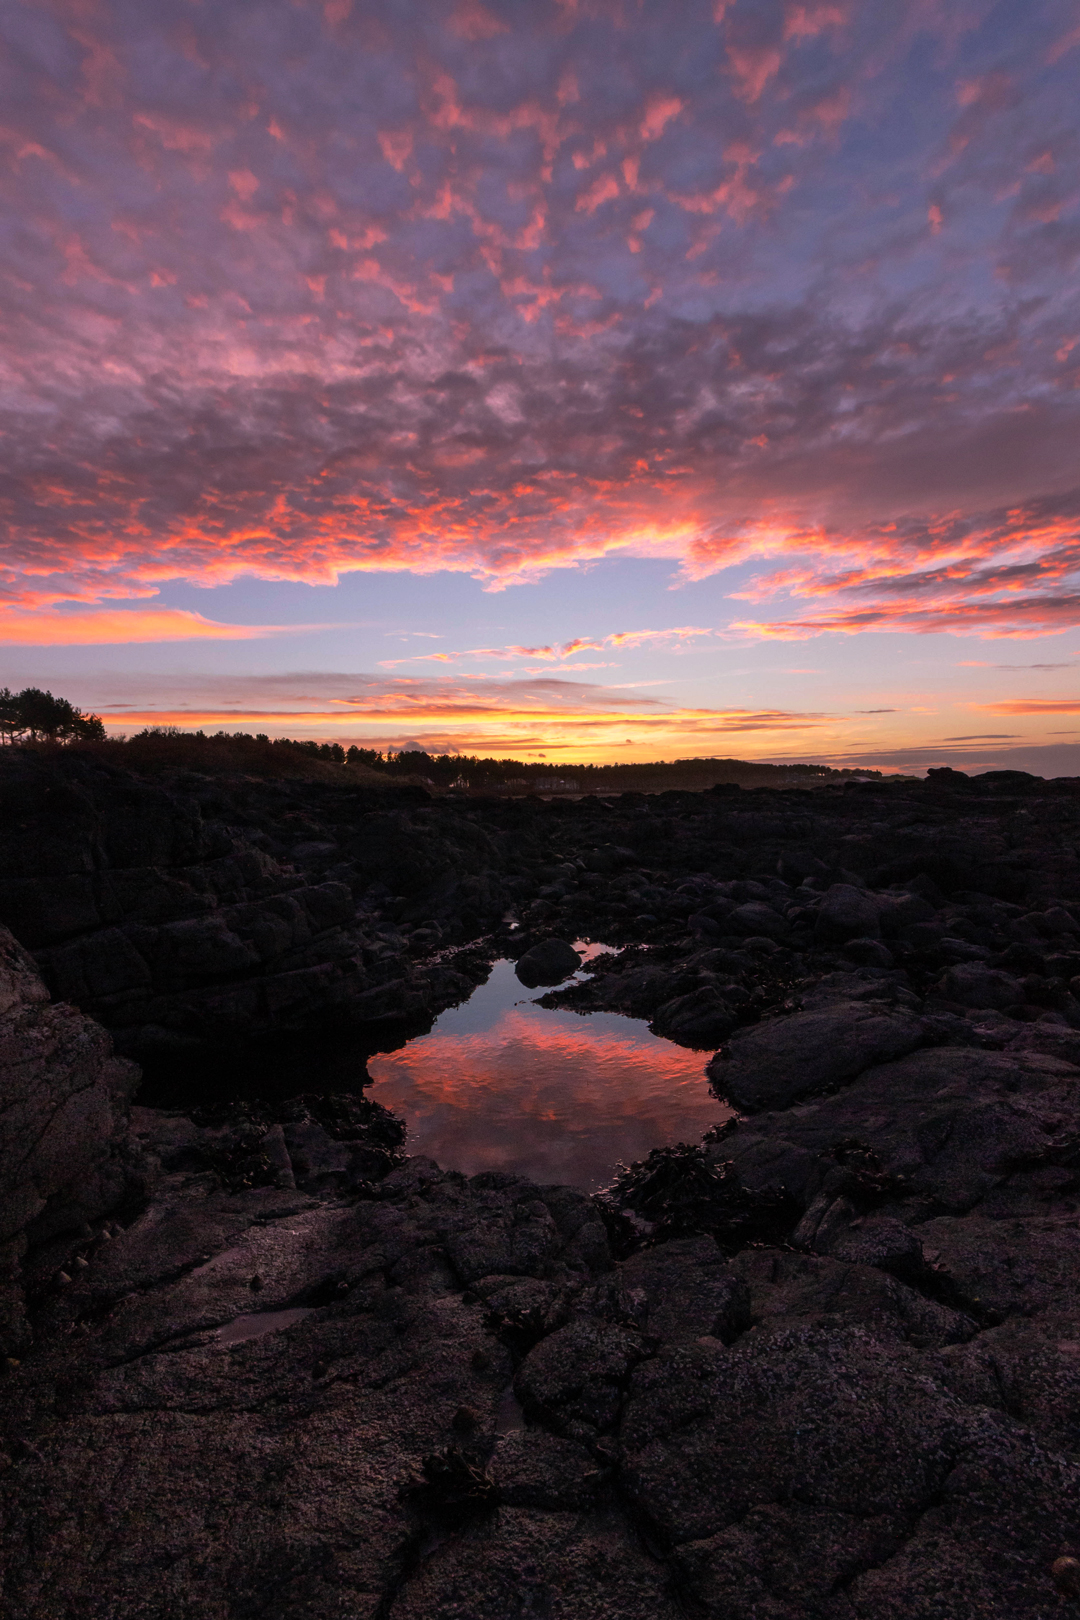 Sunset reflection in a rockpool at Yellowcraig Beach, East Lothian